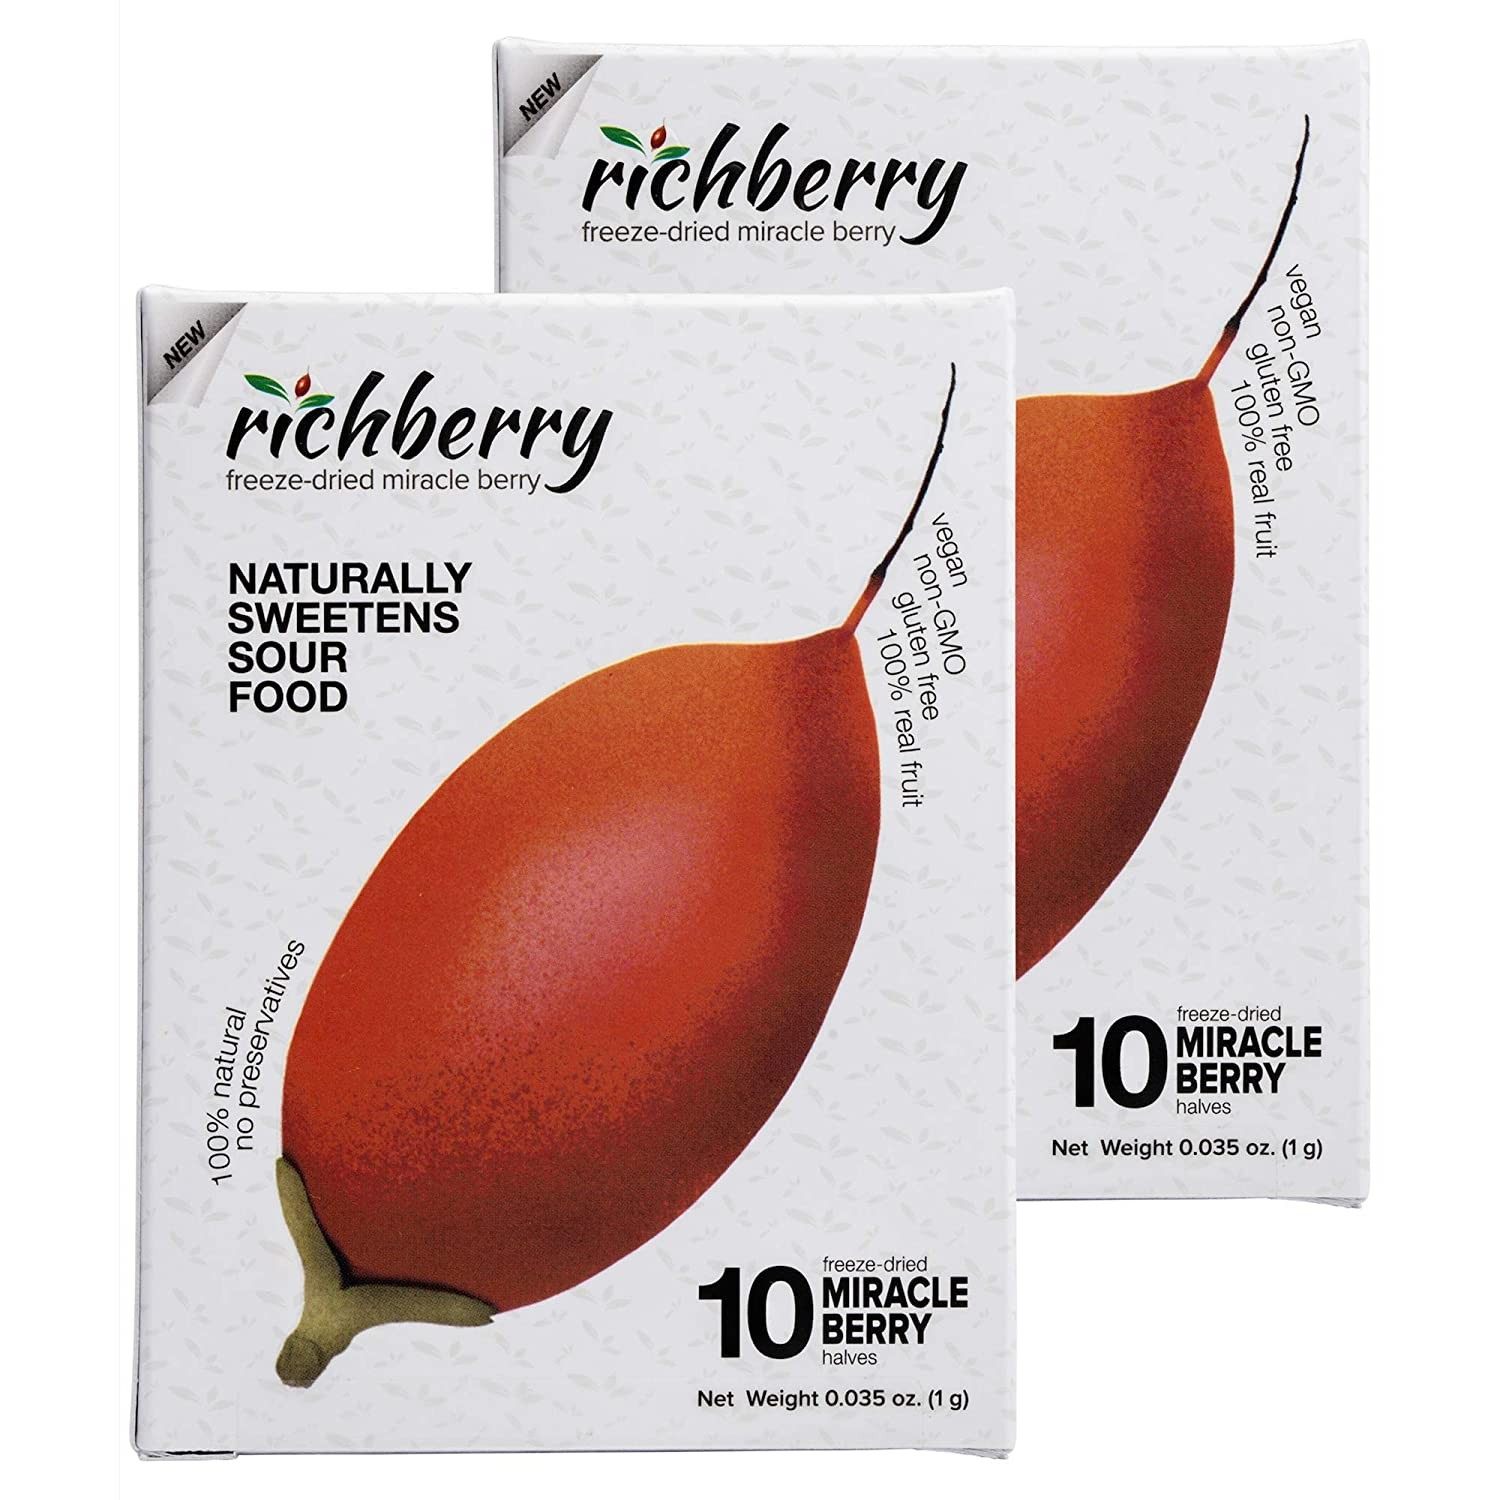 Miracle Berry by richberry, 2 Pack of 10 Halves (1g), Naturally Sweetens Sour Food, 100% Freeze-dried Premium Fruits, No Preservatives, Great for Snacks and Taste Tripping, Vegan